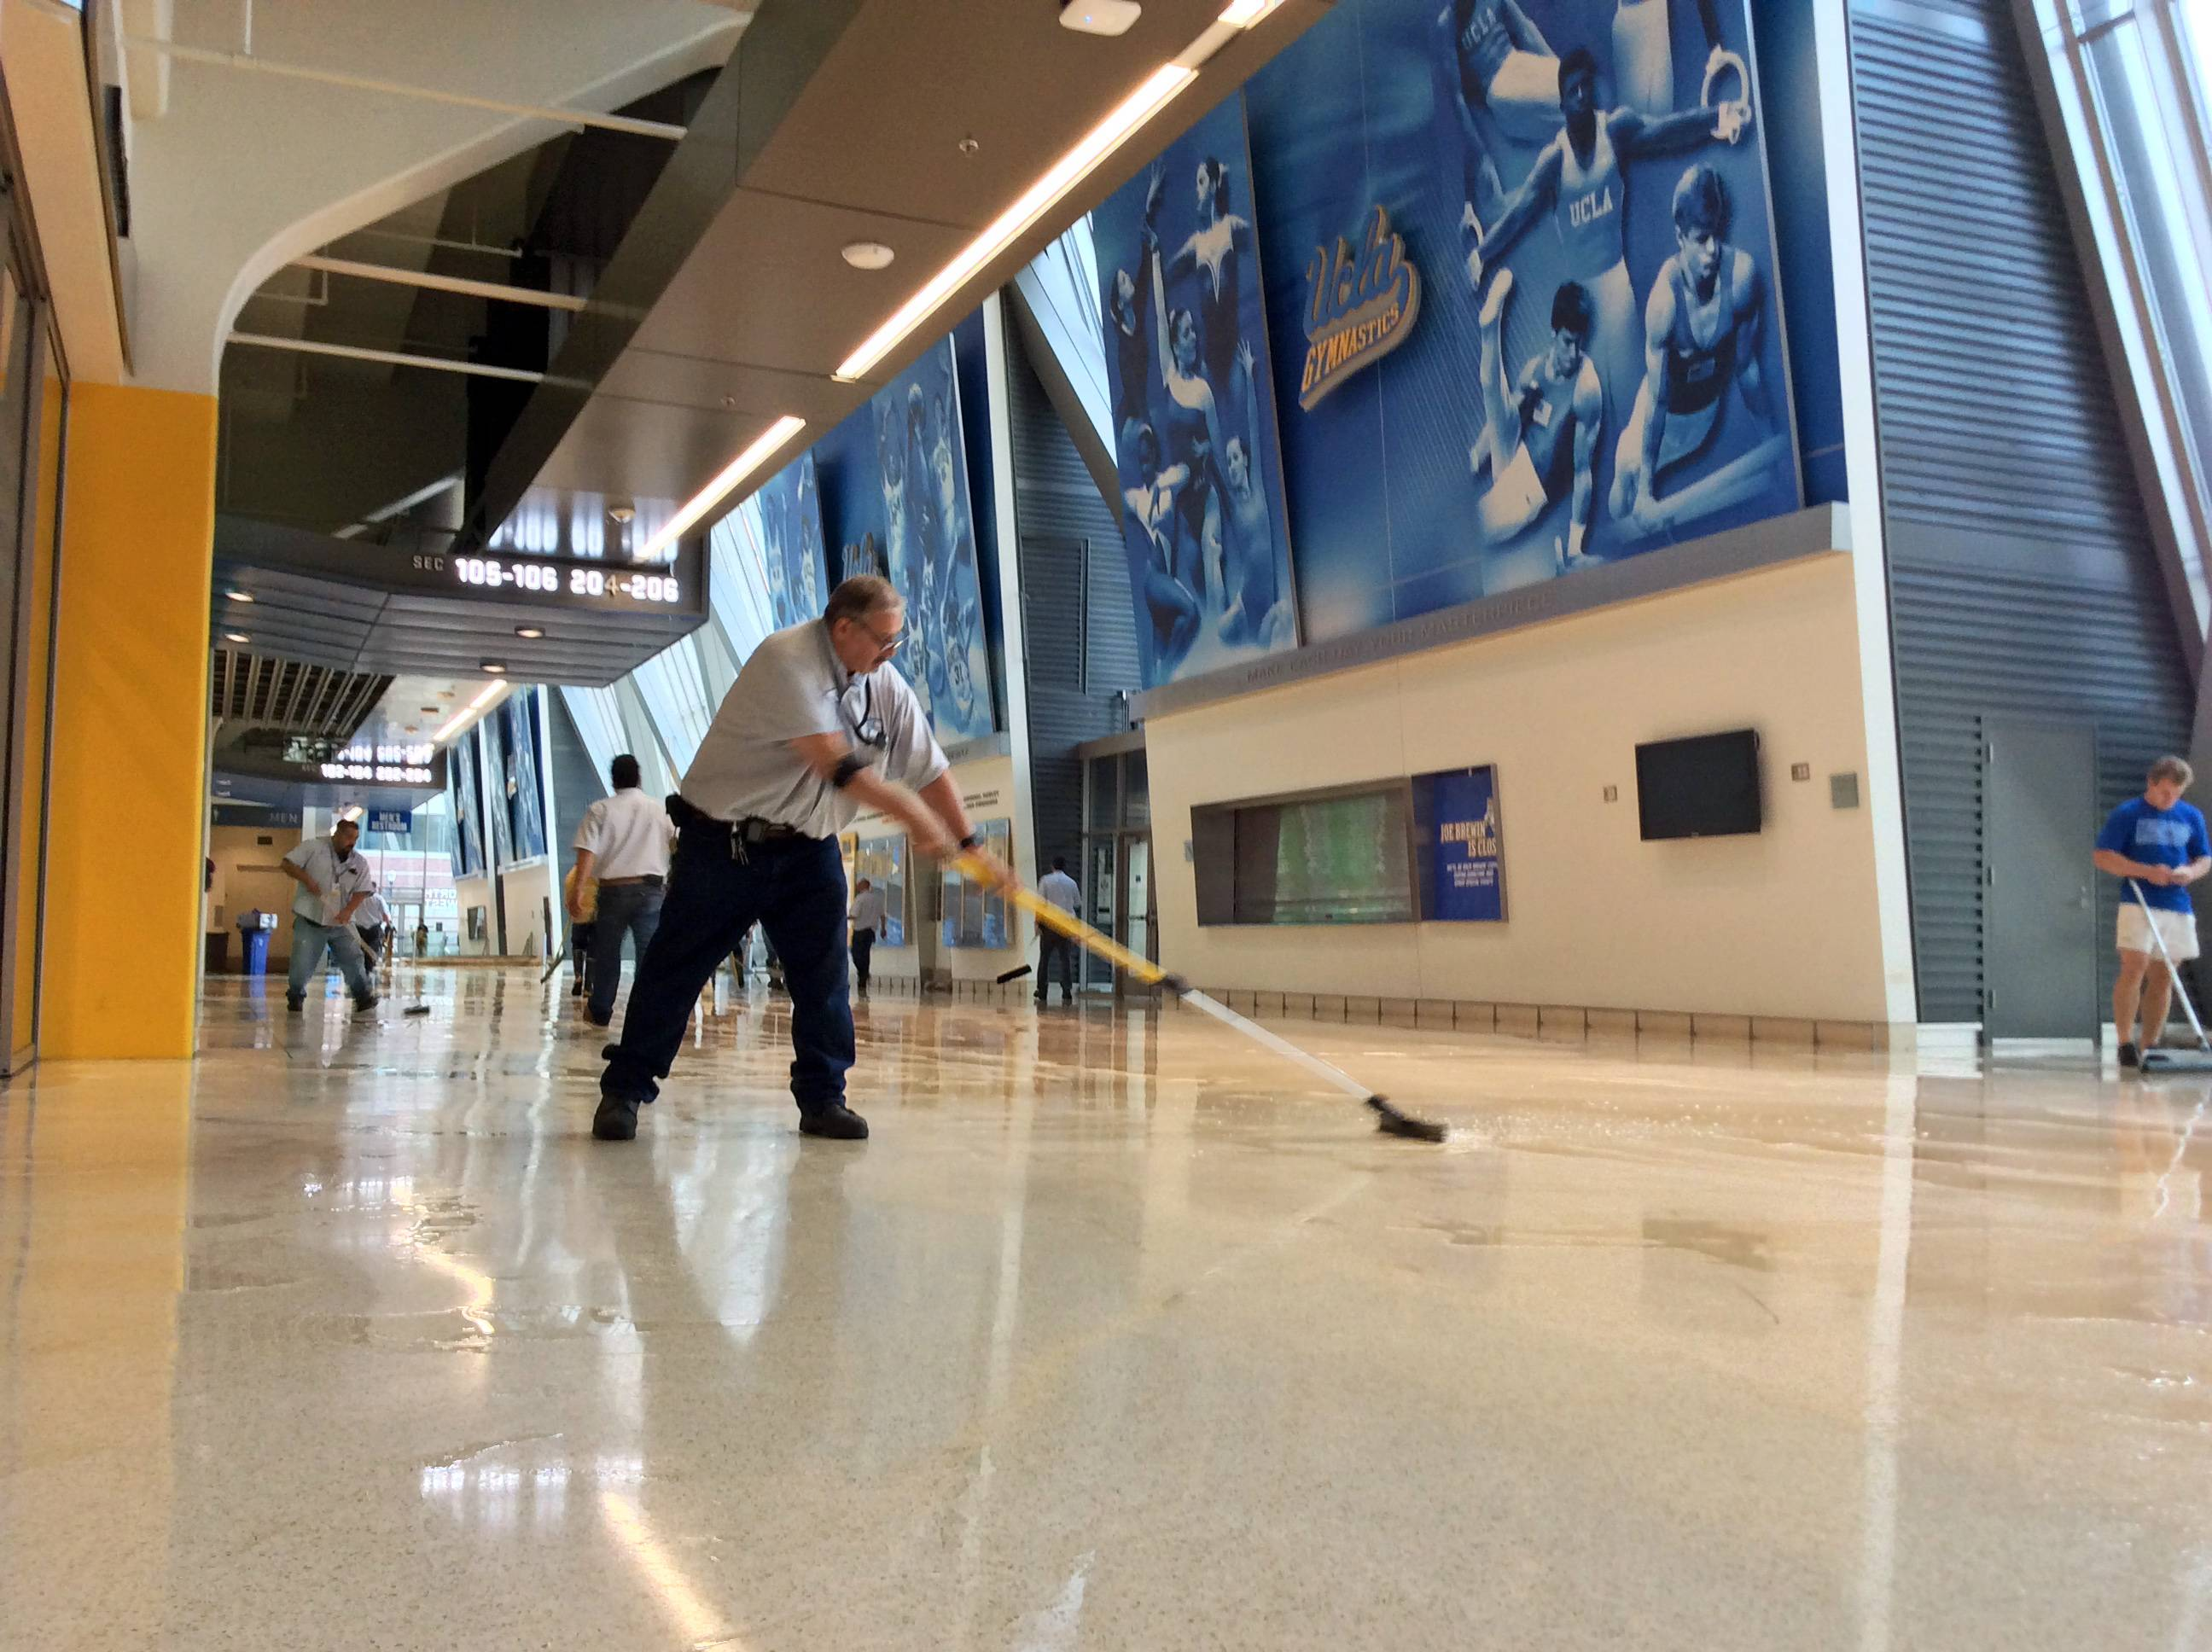 A worker clears water from the lobby floor of Pauley Pavilion, home of UCLA basketball, after a 30-inch water main burst on nearby Sunset Boulevard Tuesday, July 29, 2014, in Los Angeles. Water also reached the playing floor of the basketball arena.